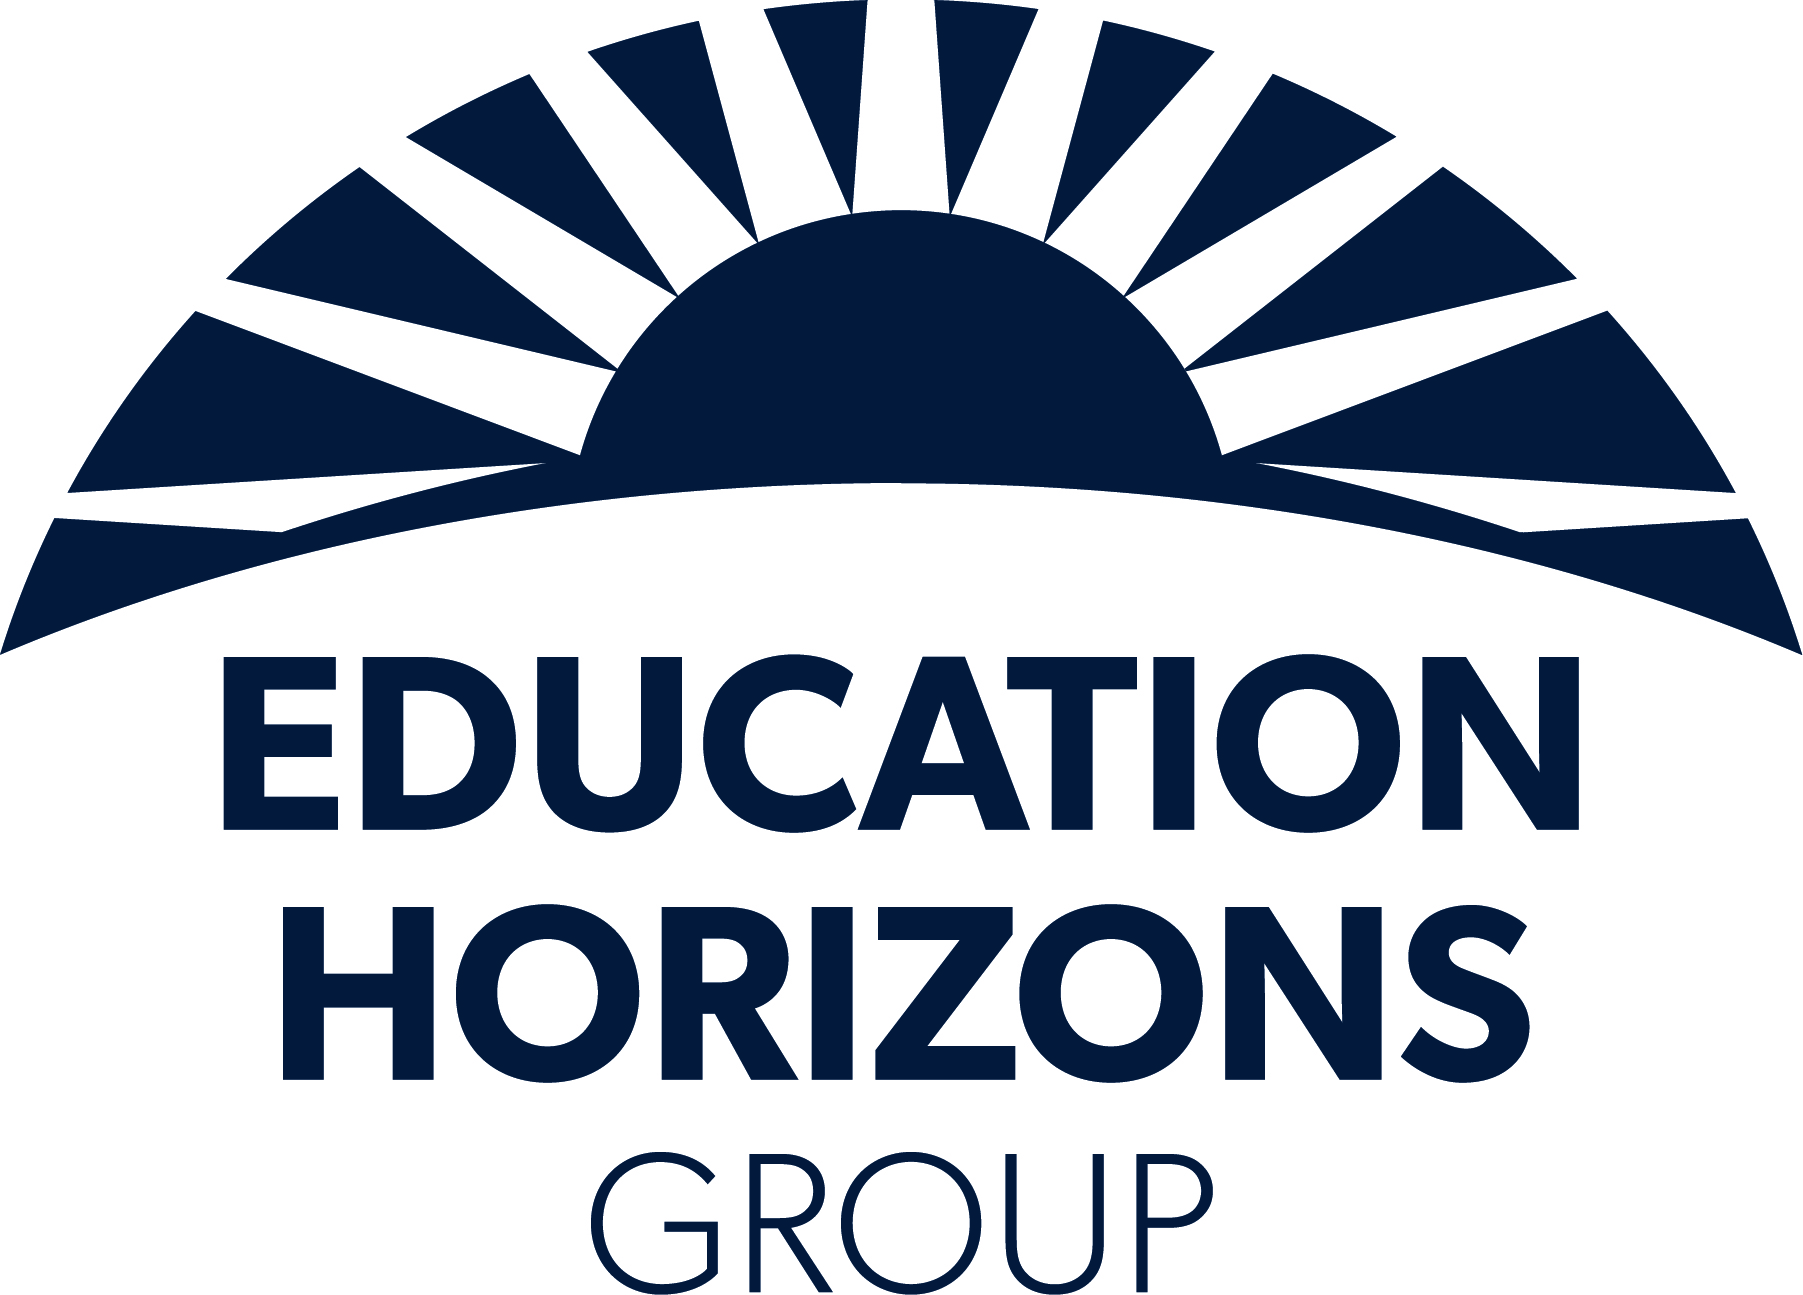 Education Horizons